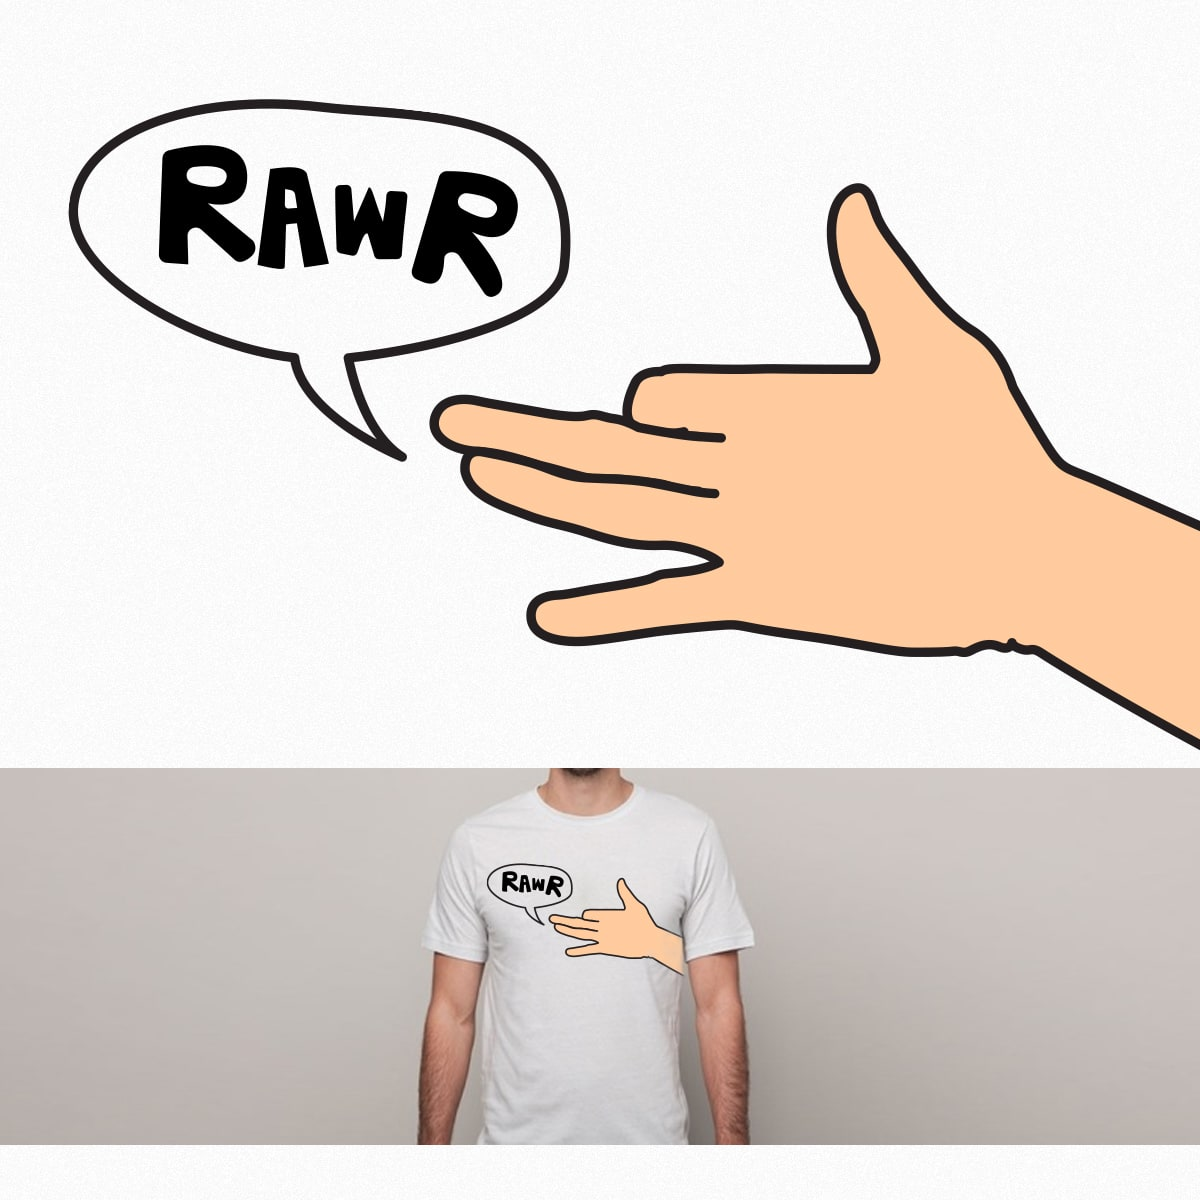 Rawr by sknny on Threadless